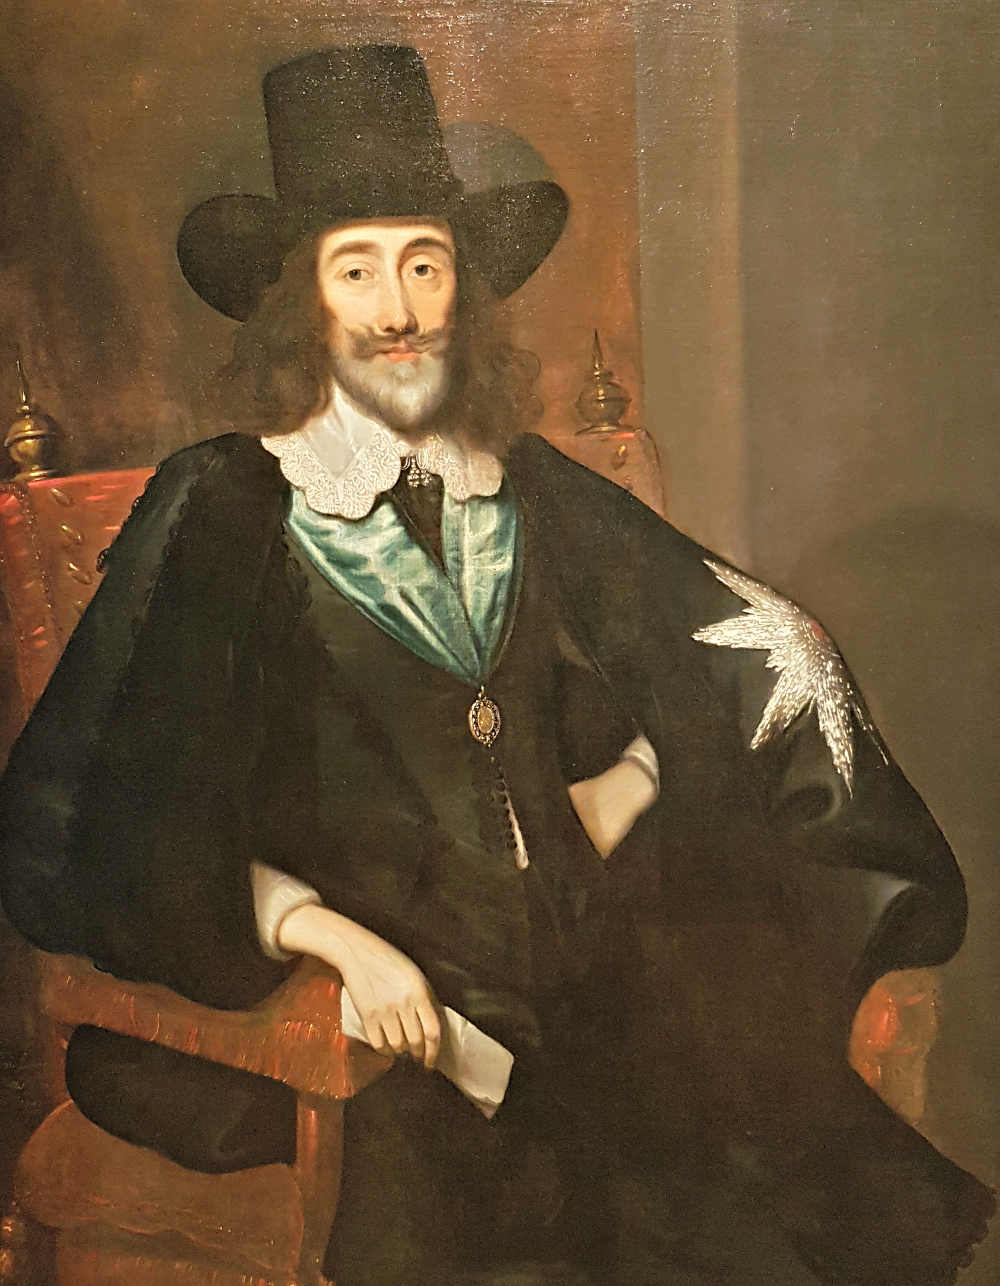 Charles II, Art and Power, Queen's Gallery